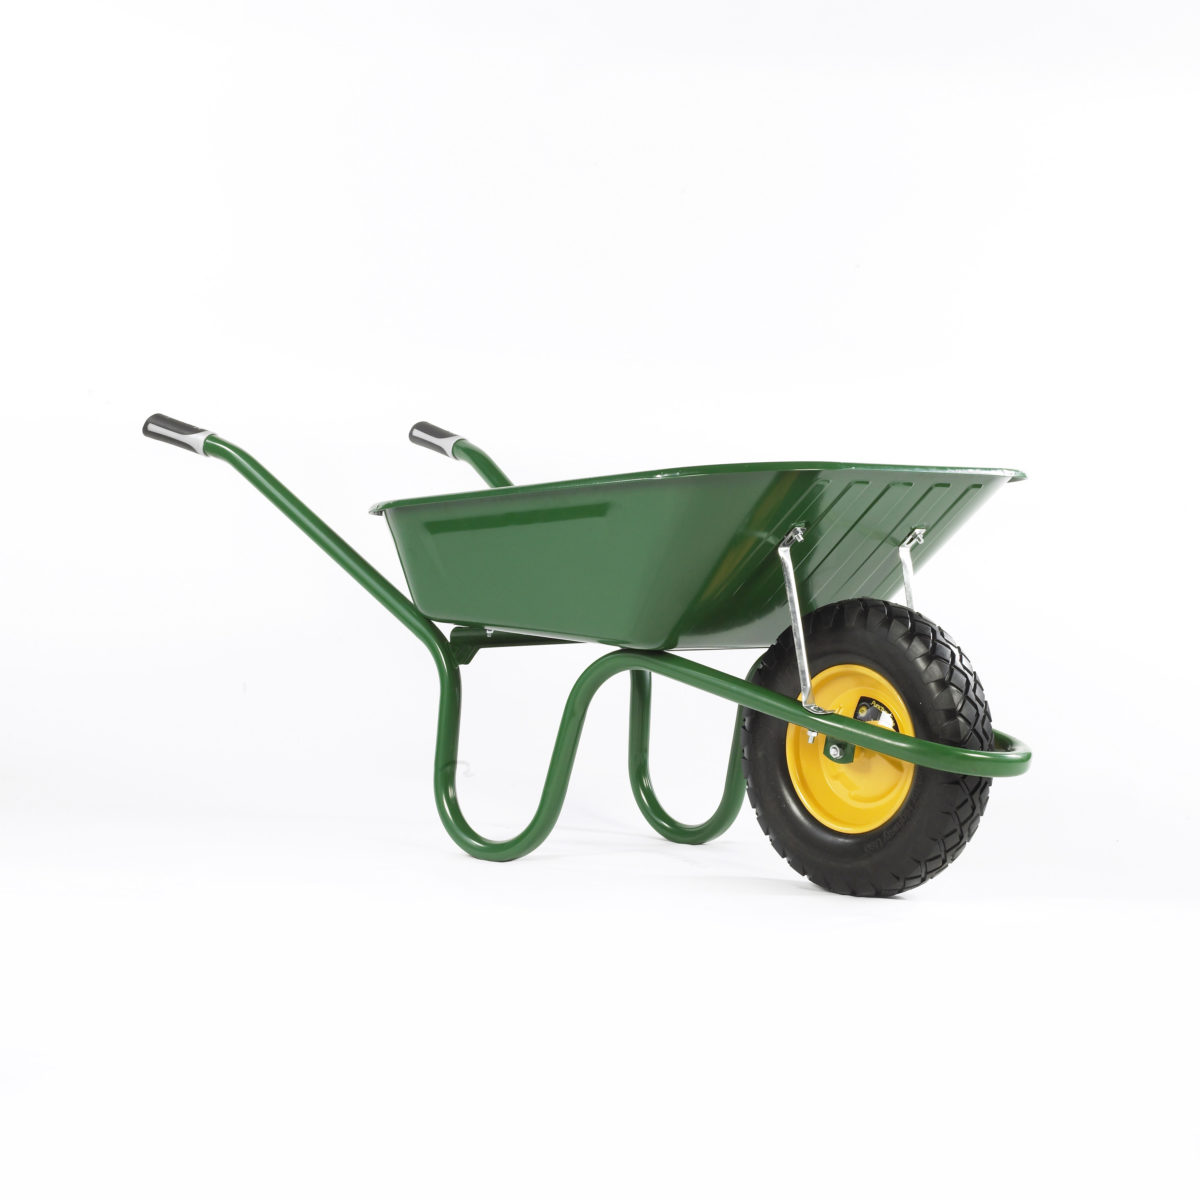 Haemmerlin 1041 Puncture Free Original Wheelbarrow